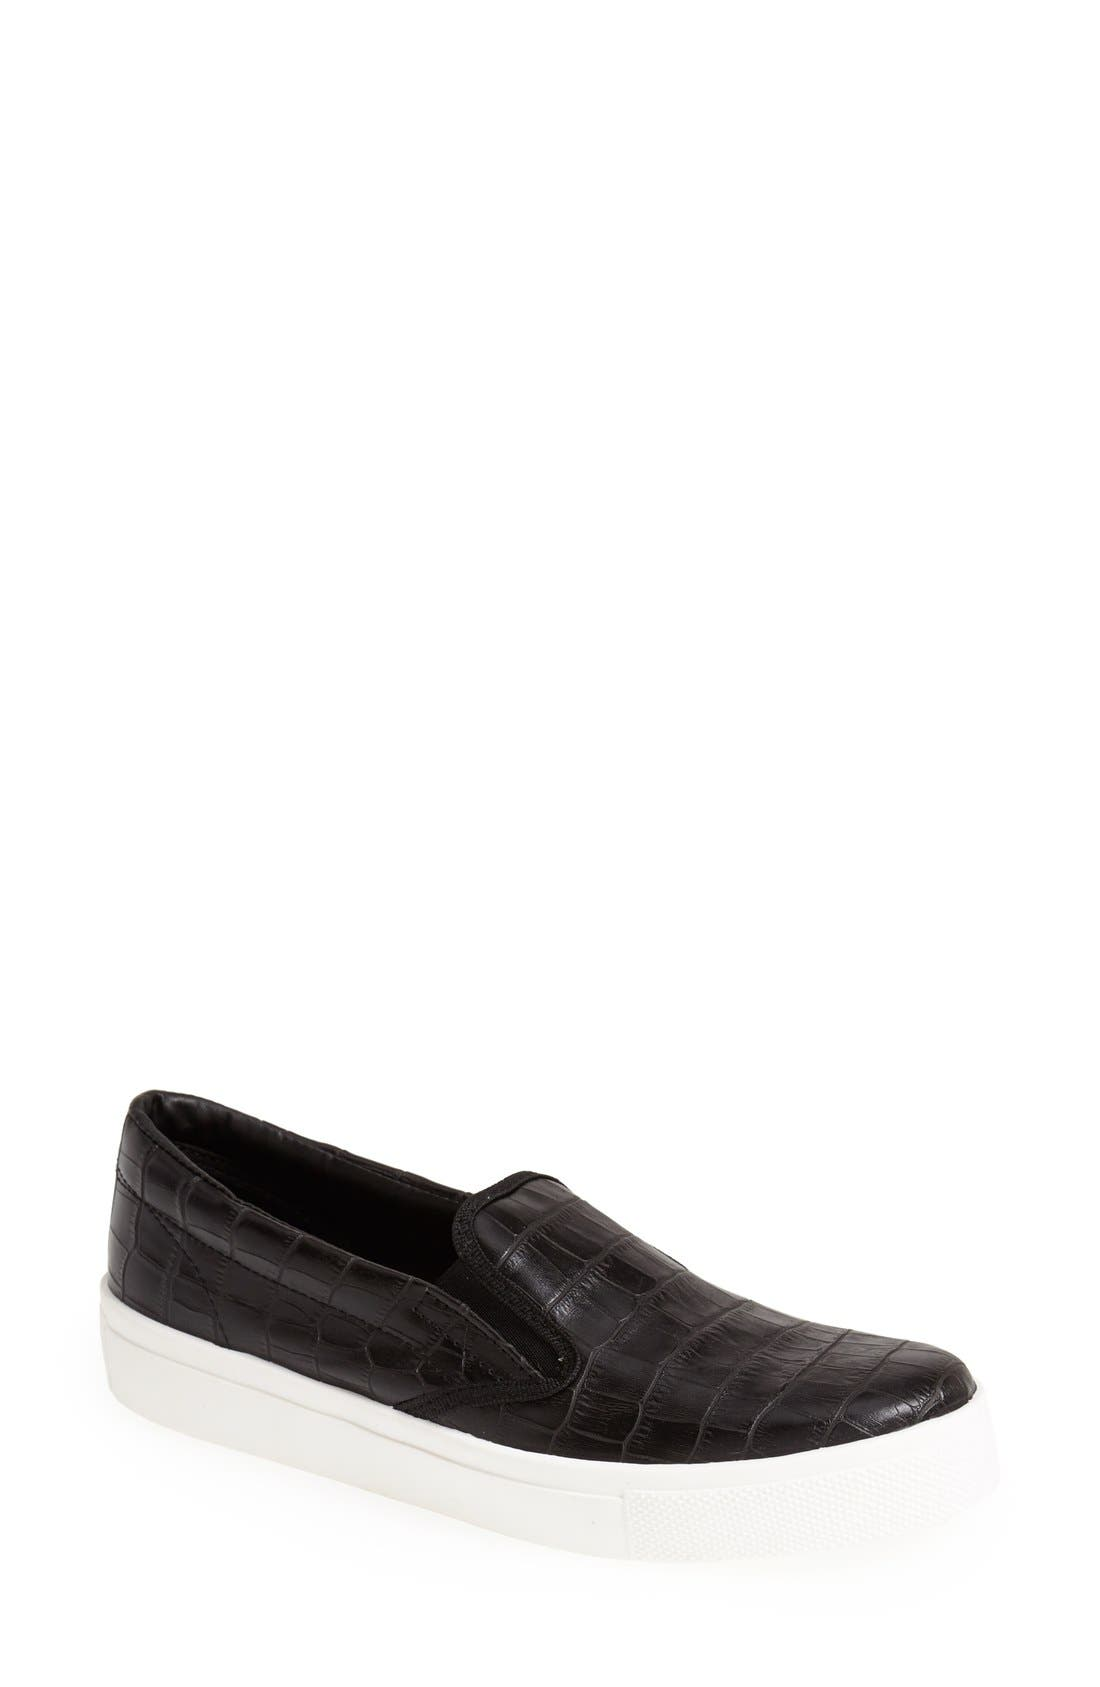 TOPSHOP 'Tipi' Slip-On, Main, color, 001